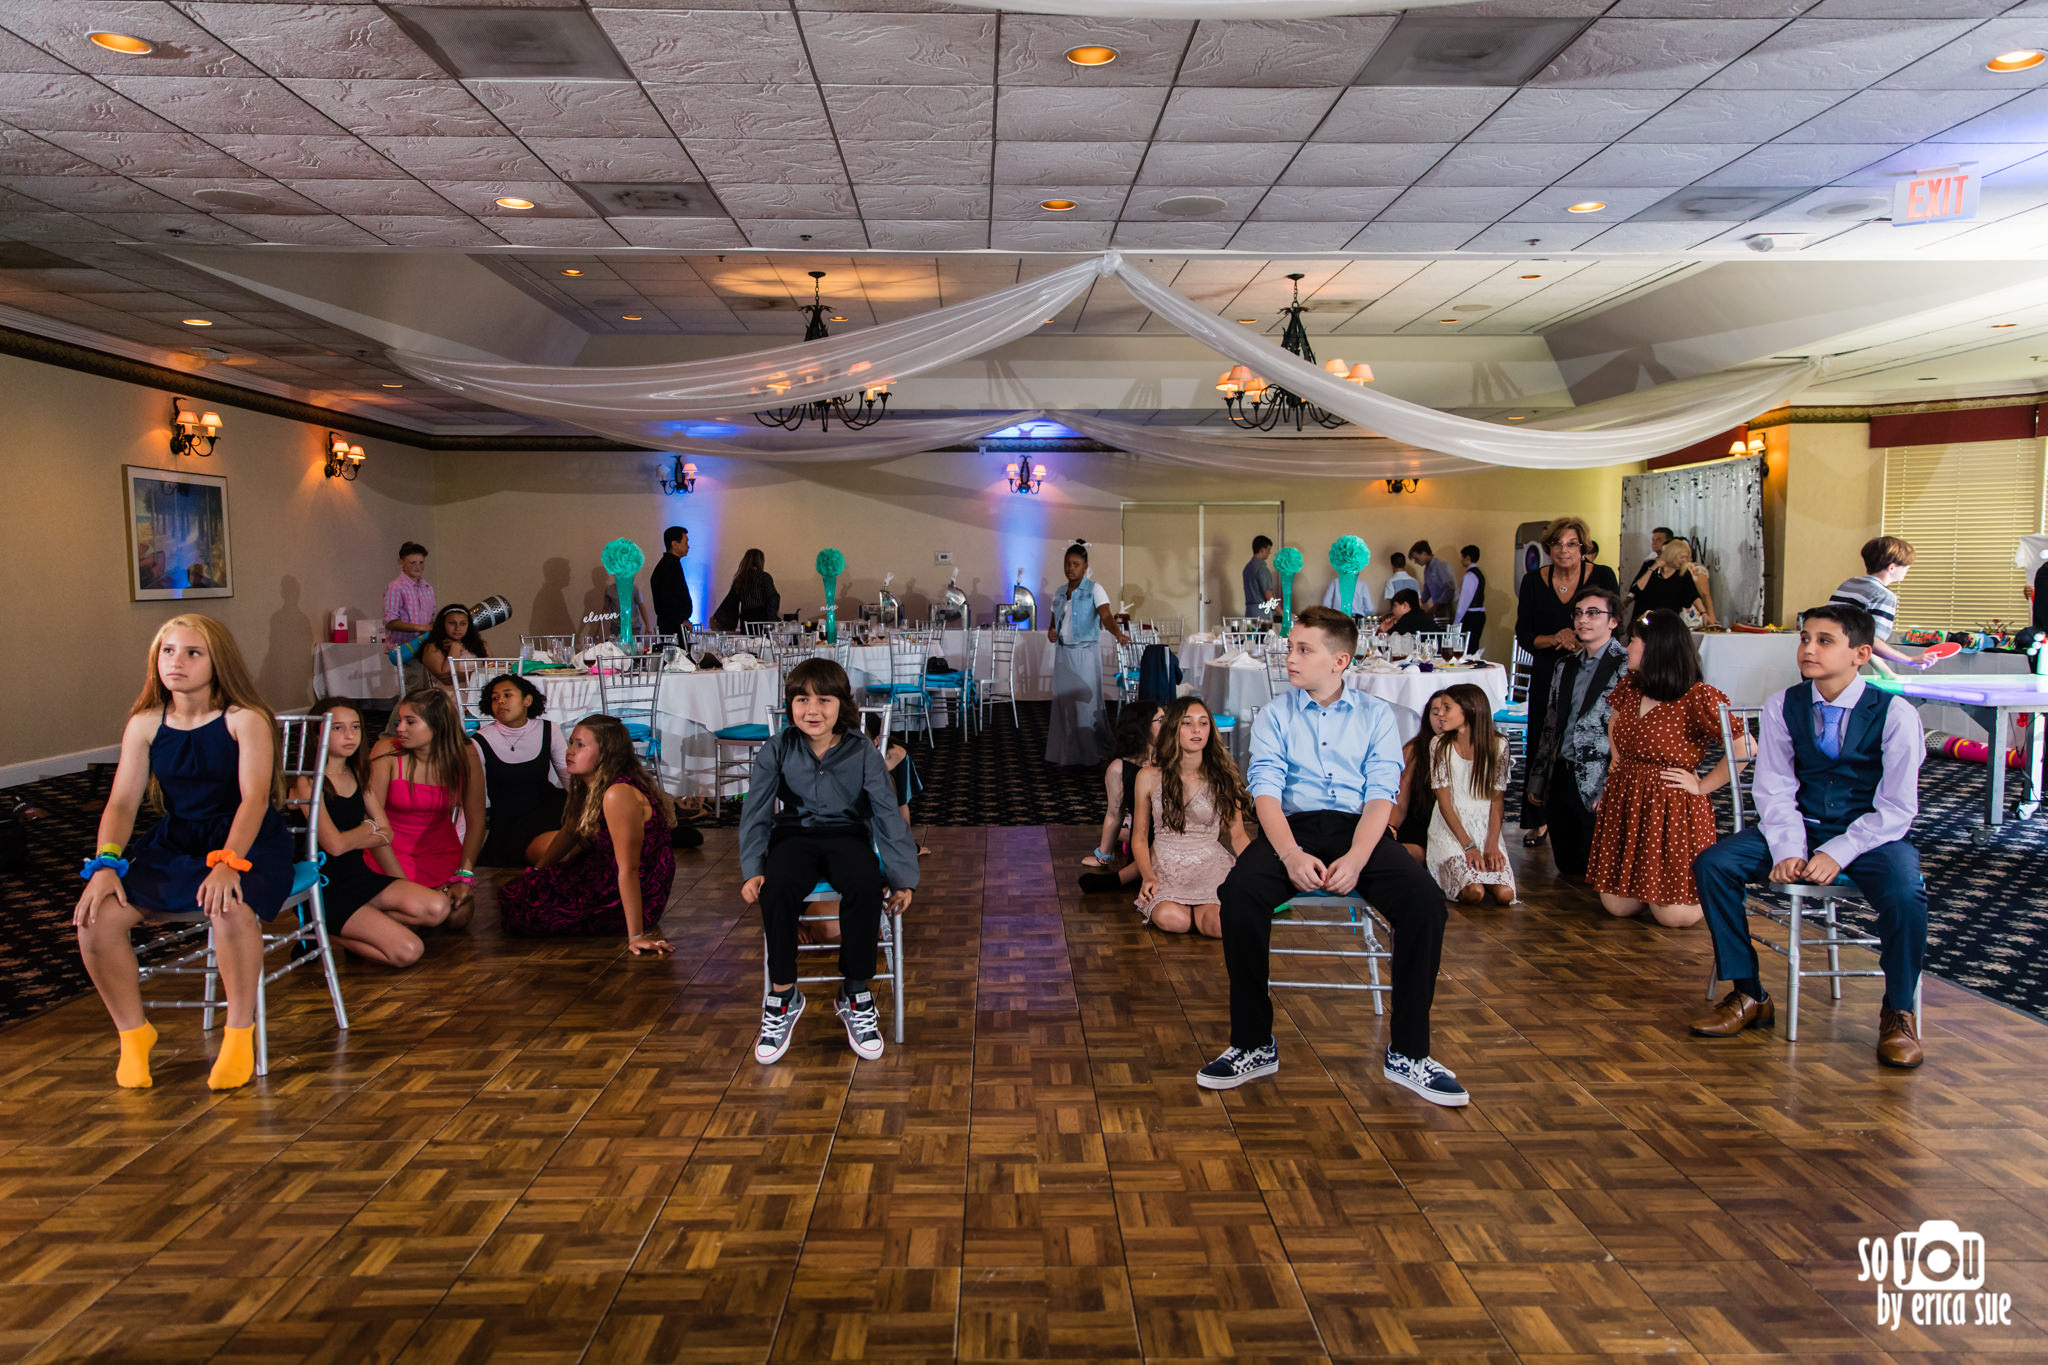 so-you-by-erica-sue-bnai-mitzvah-photographer-delray-beach-golf-club-fl-3591.jpg